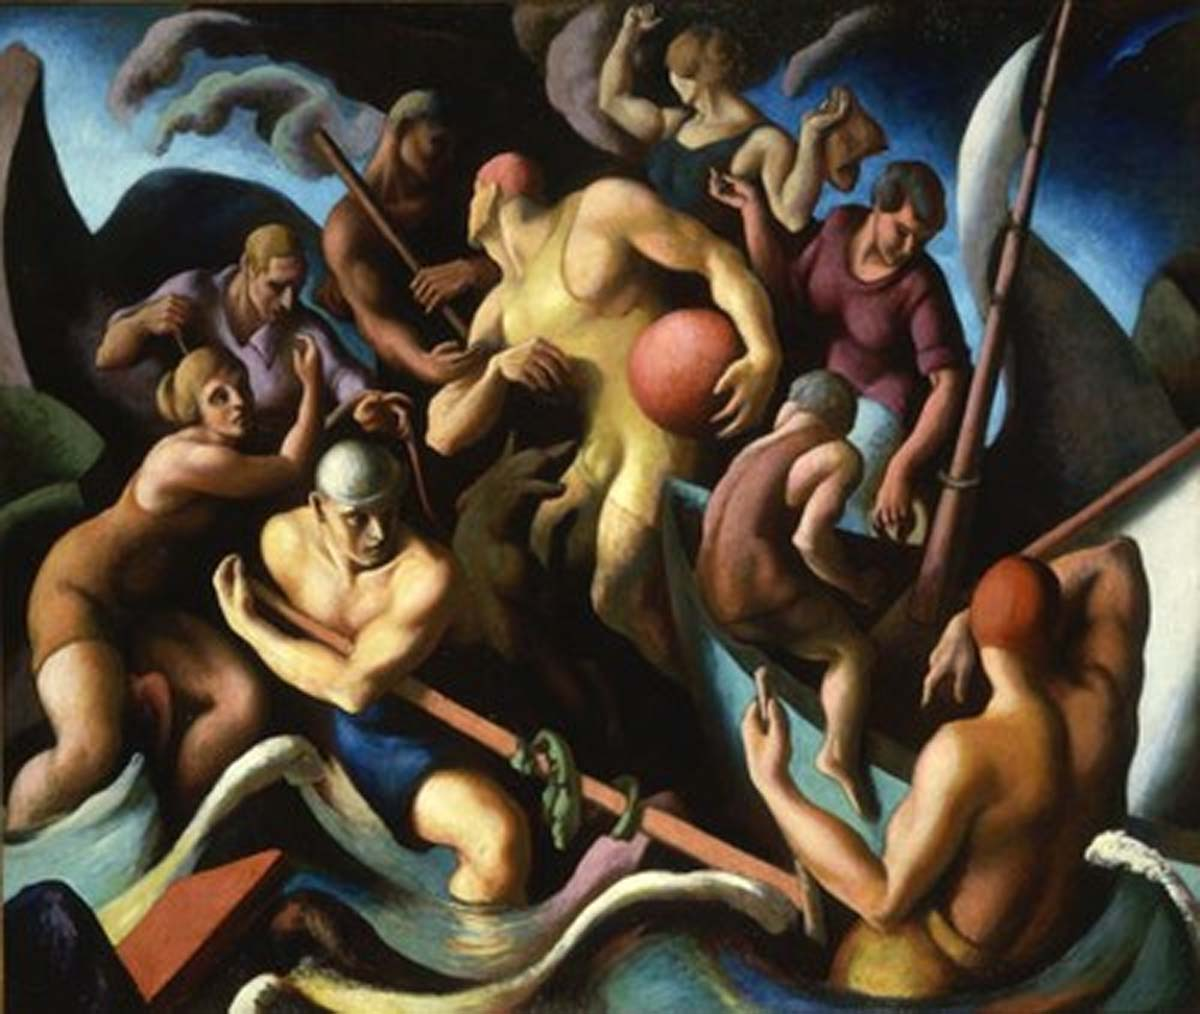 File:People-of-Chilmark-Benton-1920-lrg.jpg - Wikipedia, the free ...